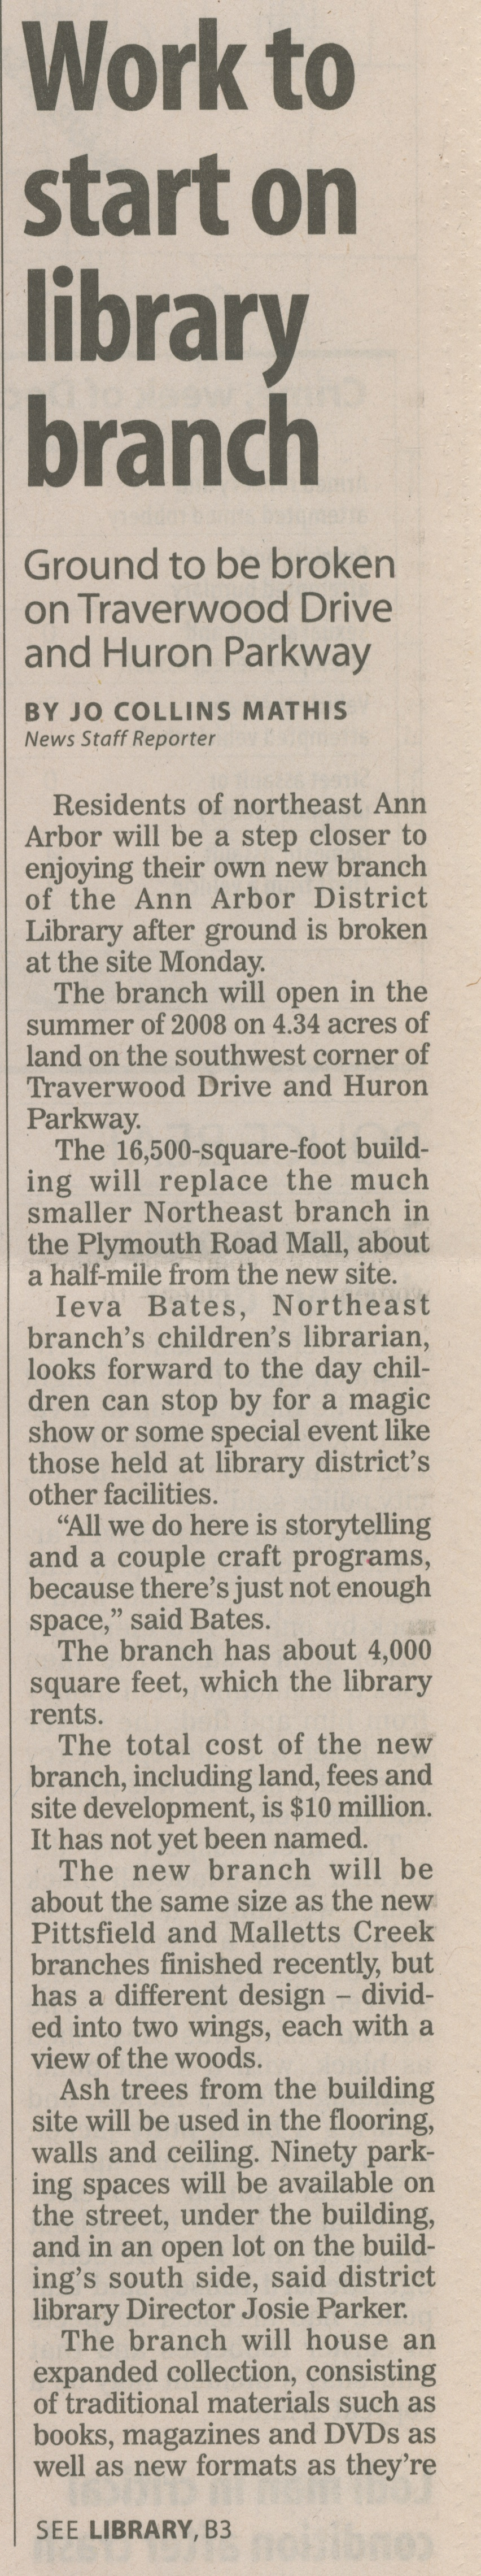 Work To Start On Library Branch image